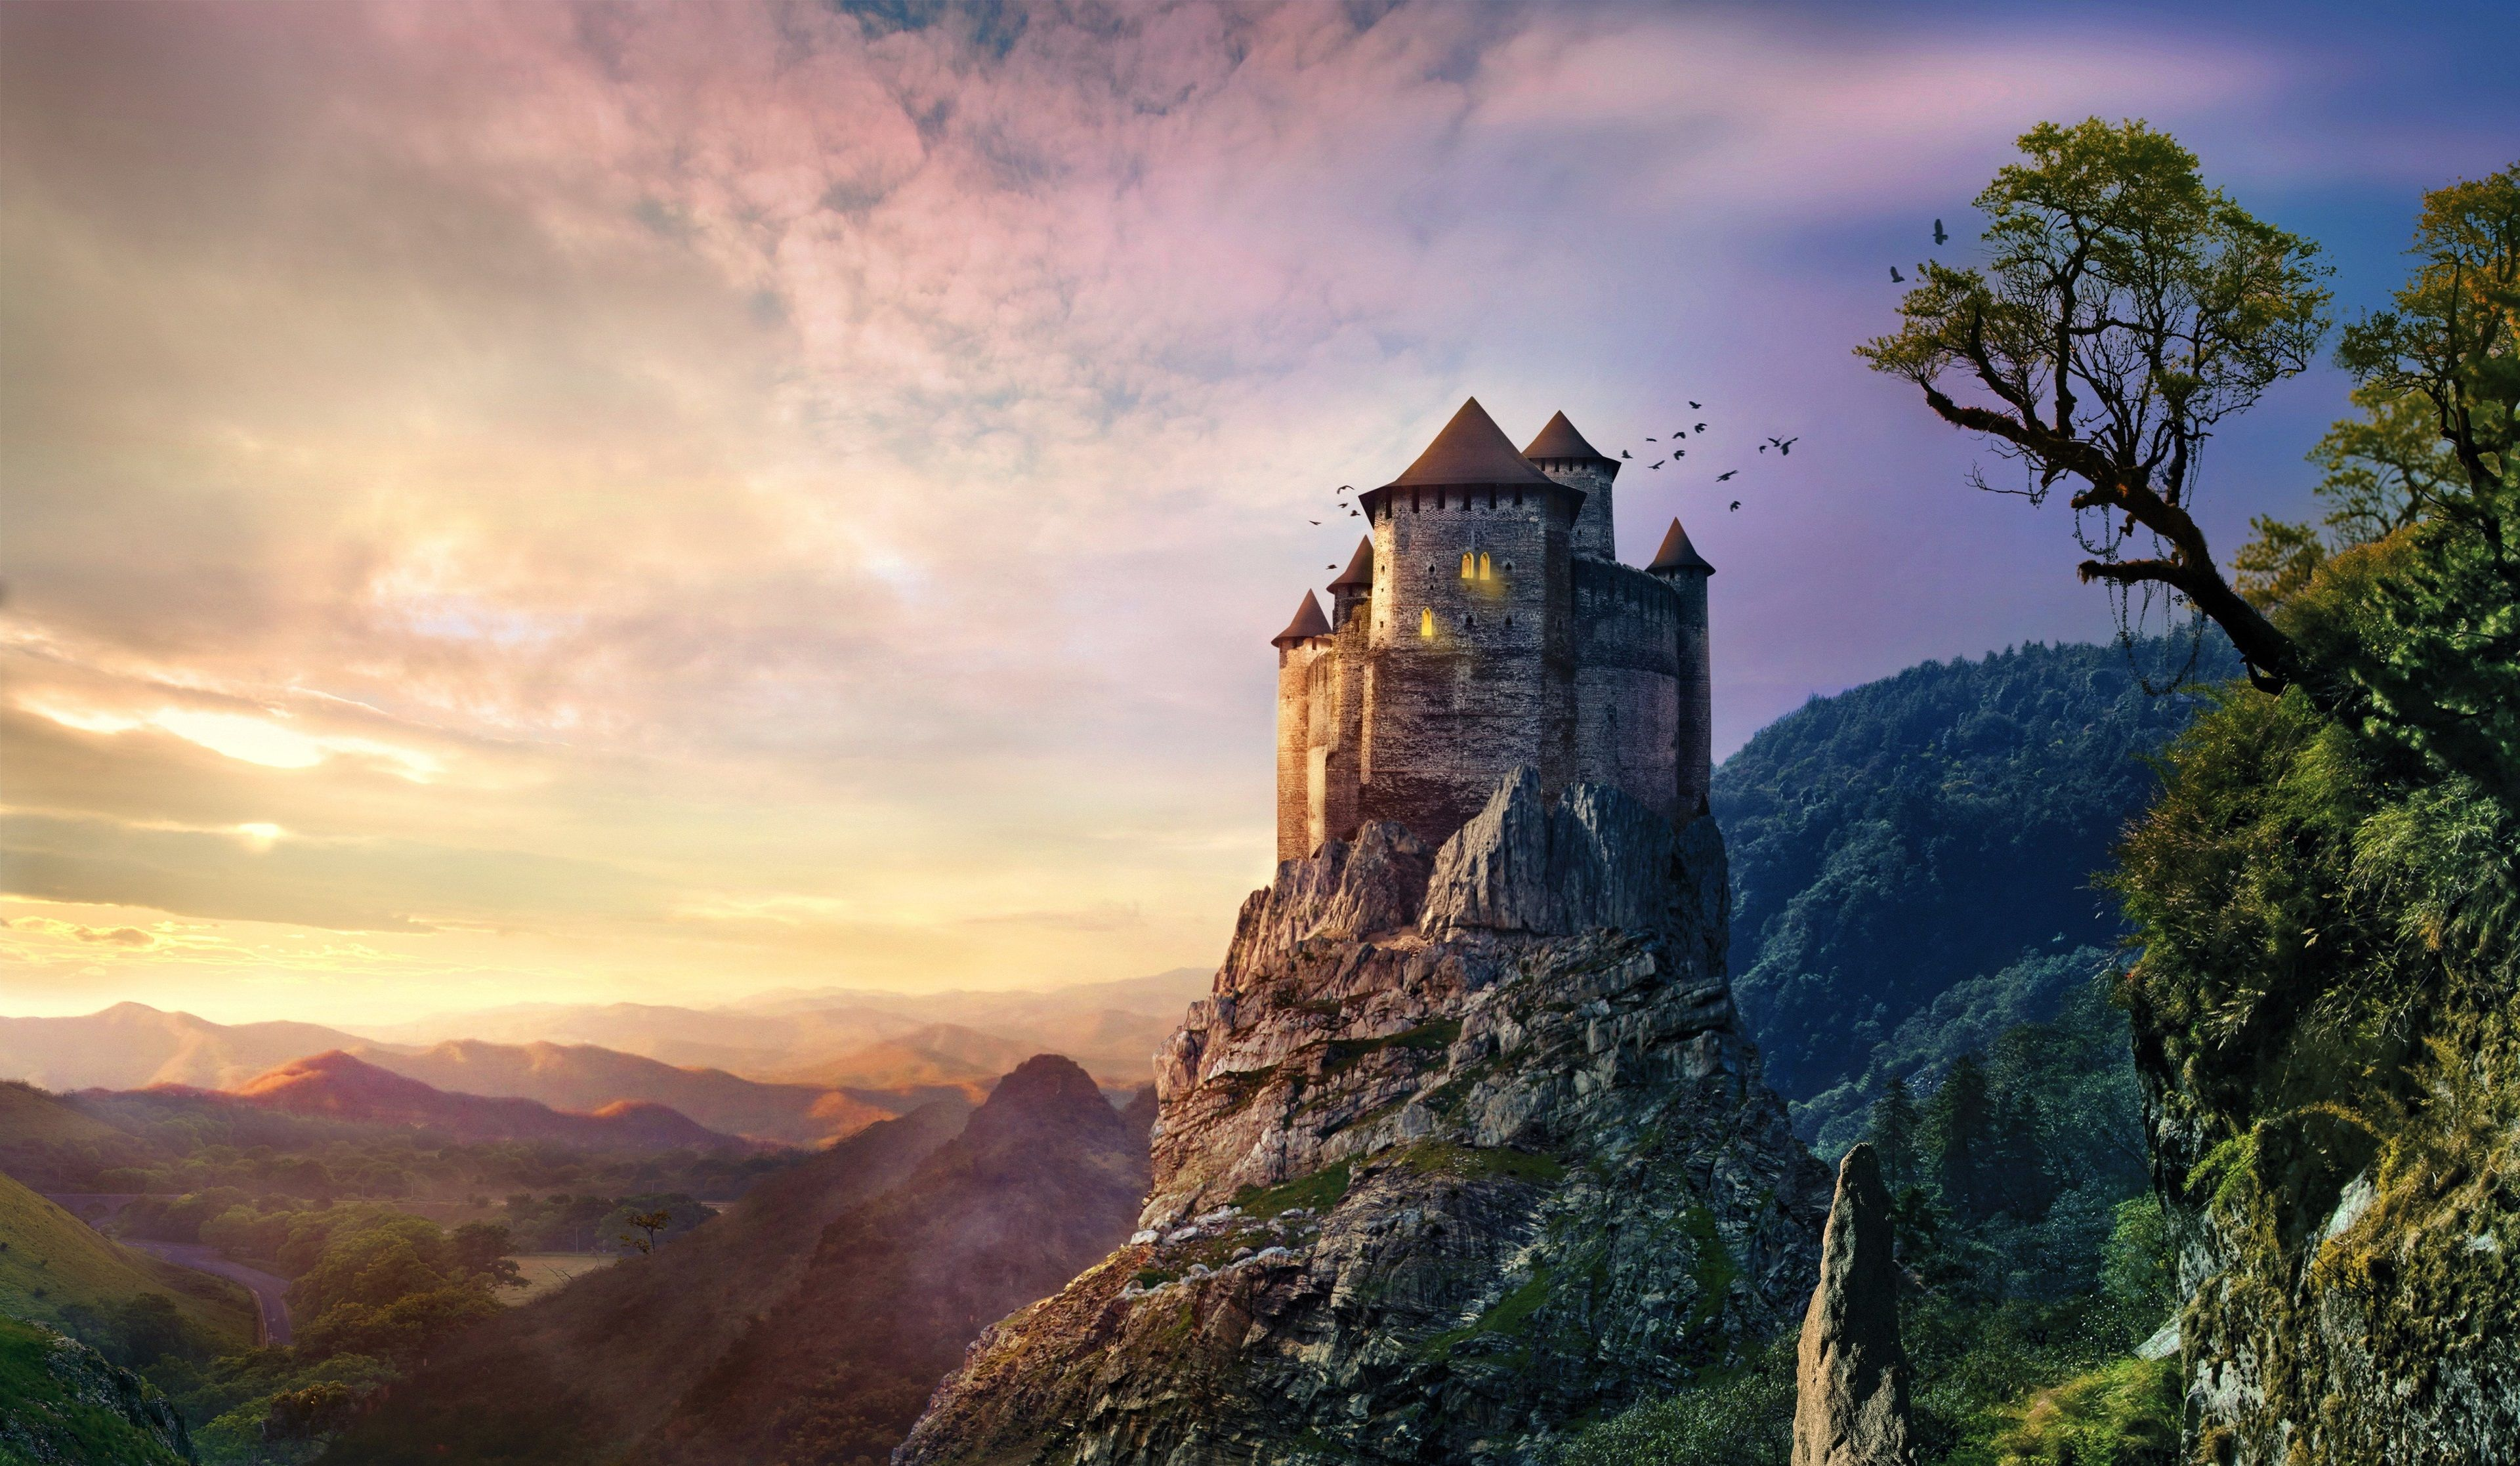 3840x2234 castle 4k computer wallpaper hd free download wallpapers 3840x2234 castle 4k computer wallpaper hd free download voltagebd Choice Image